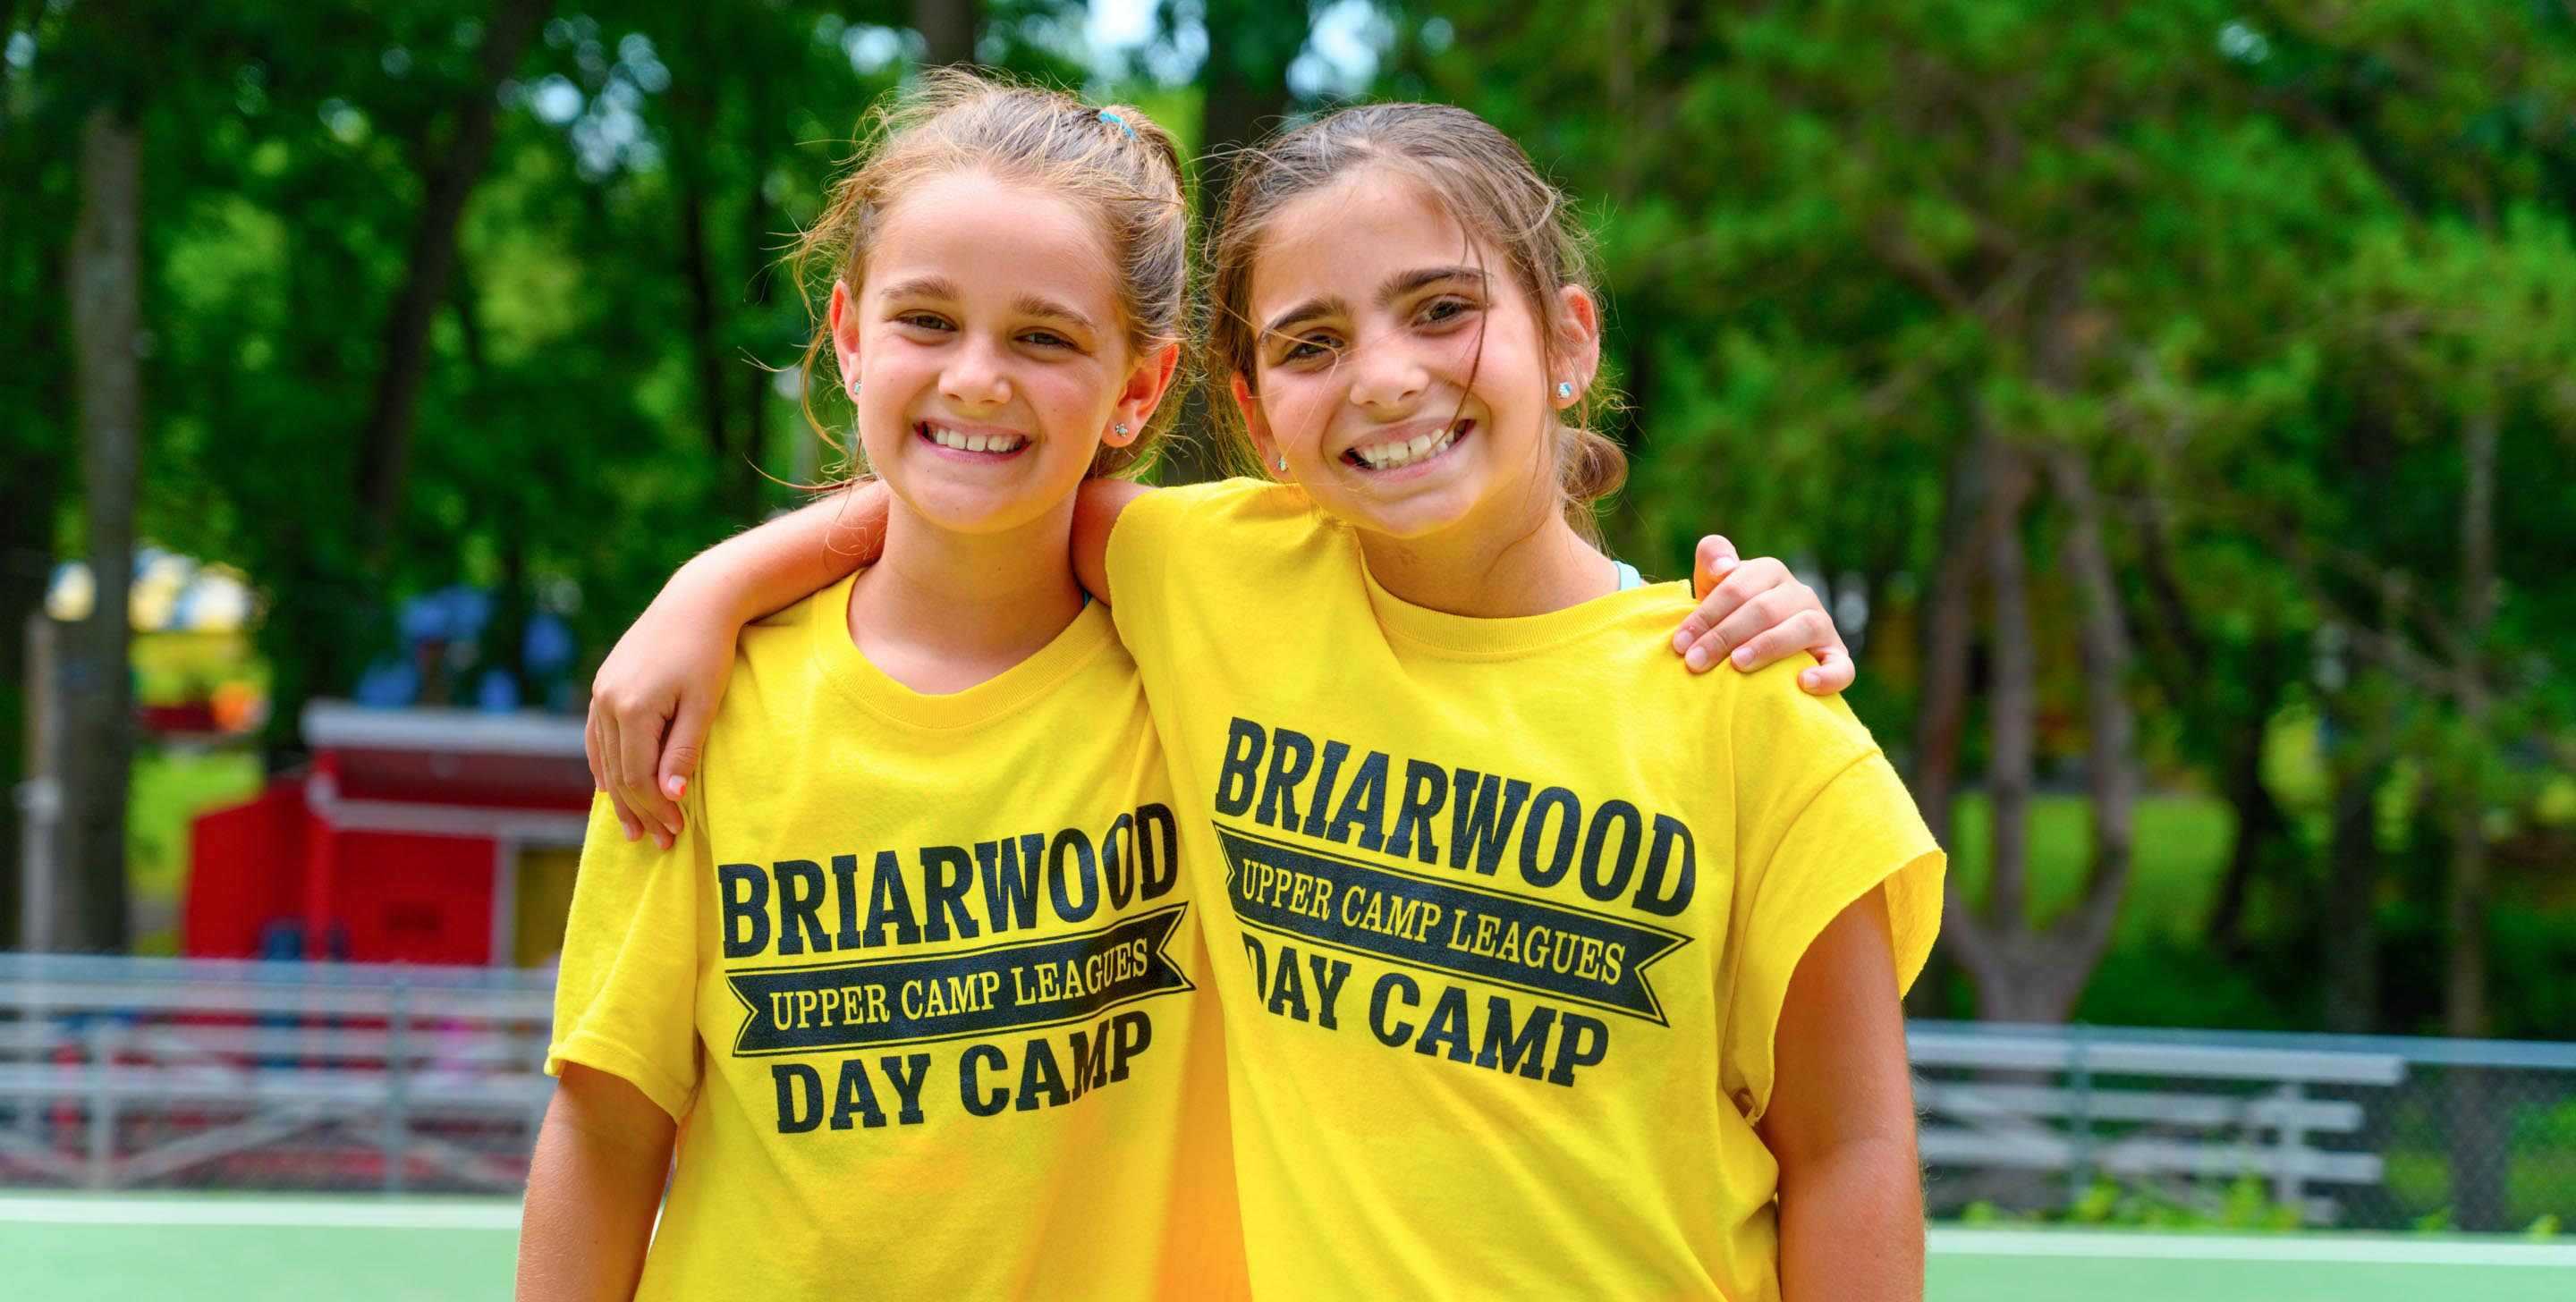 Two girls wearing camp shirts and smiling